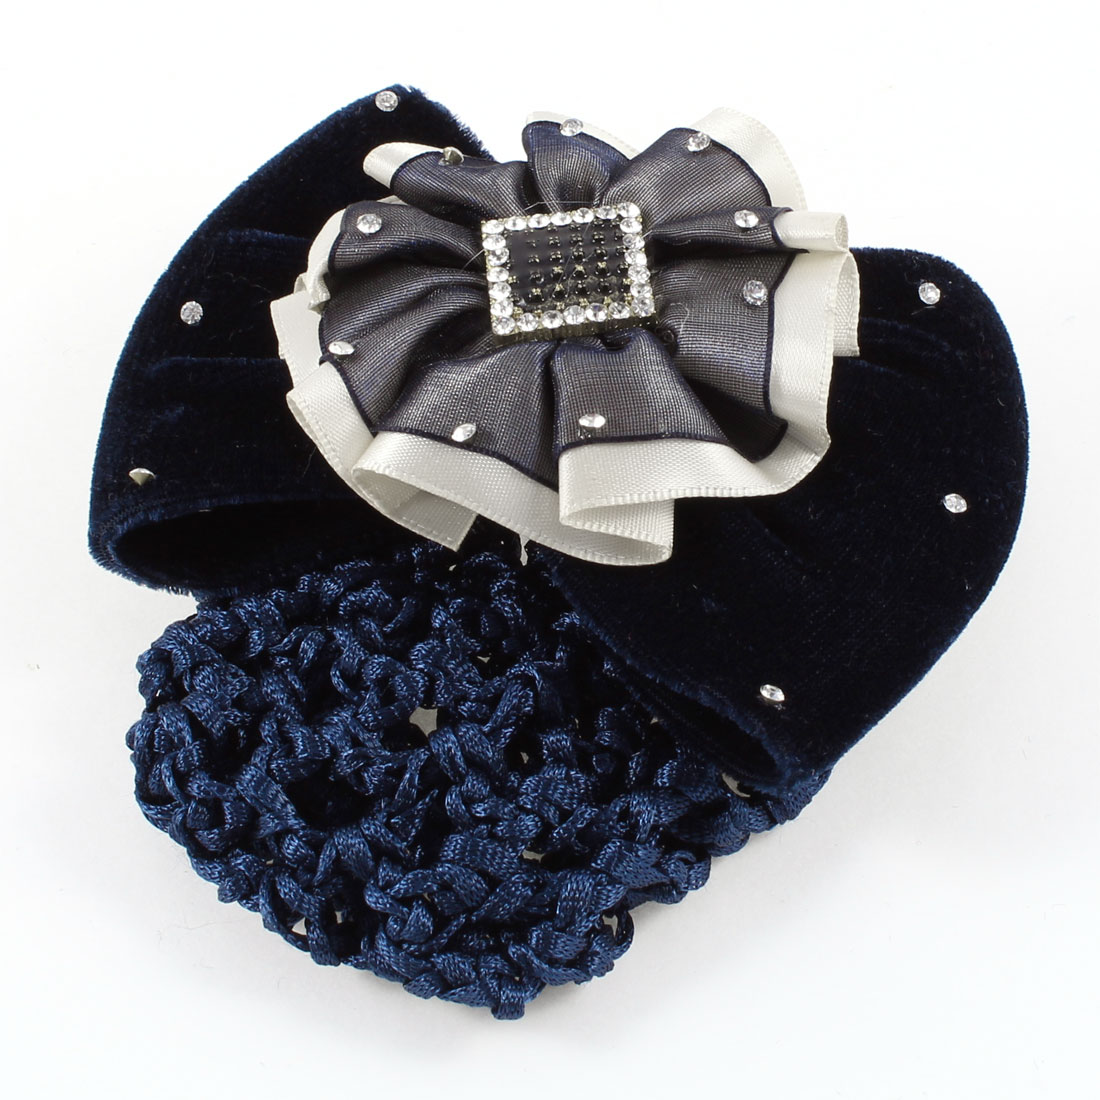 Rhinestones Detailing Ruffled Floral Snood Net Hair Clip Barrette Dark Blue